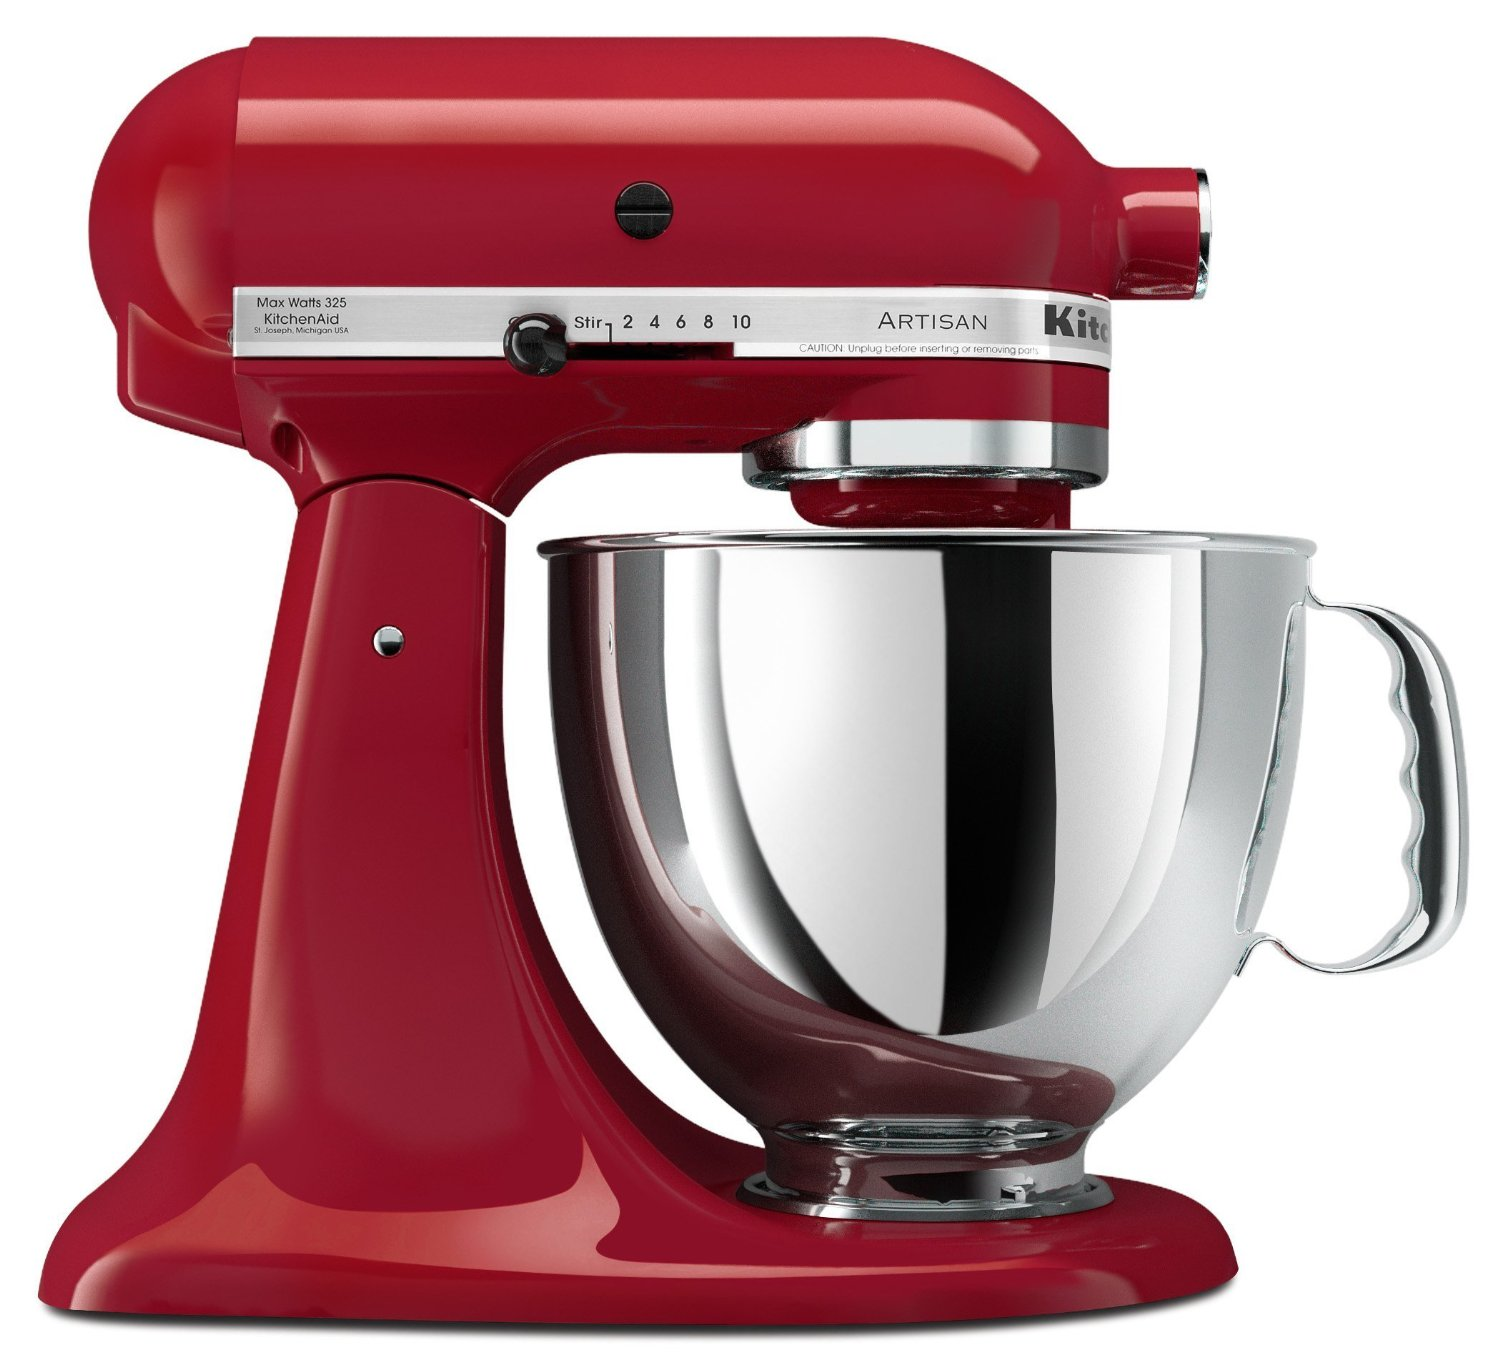 Kitchenaid electric mixer Photo - 6